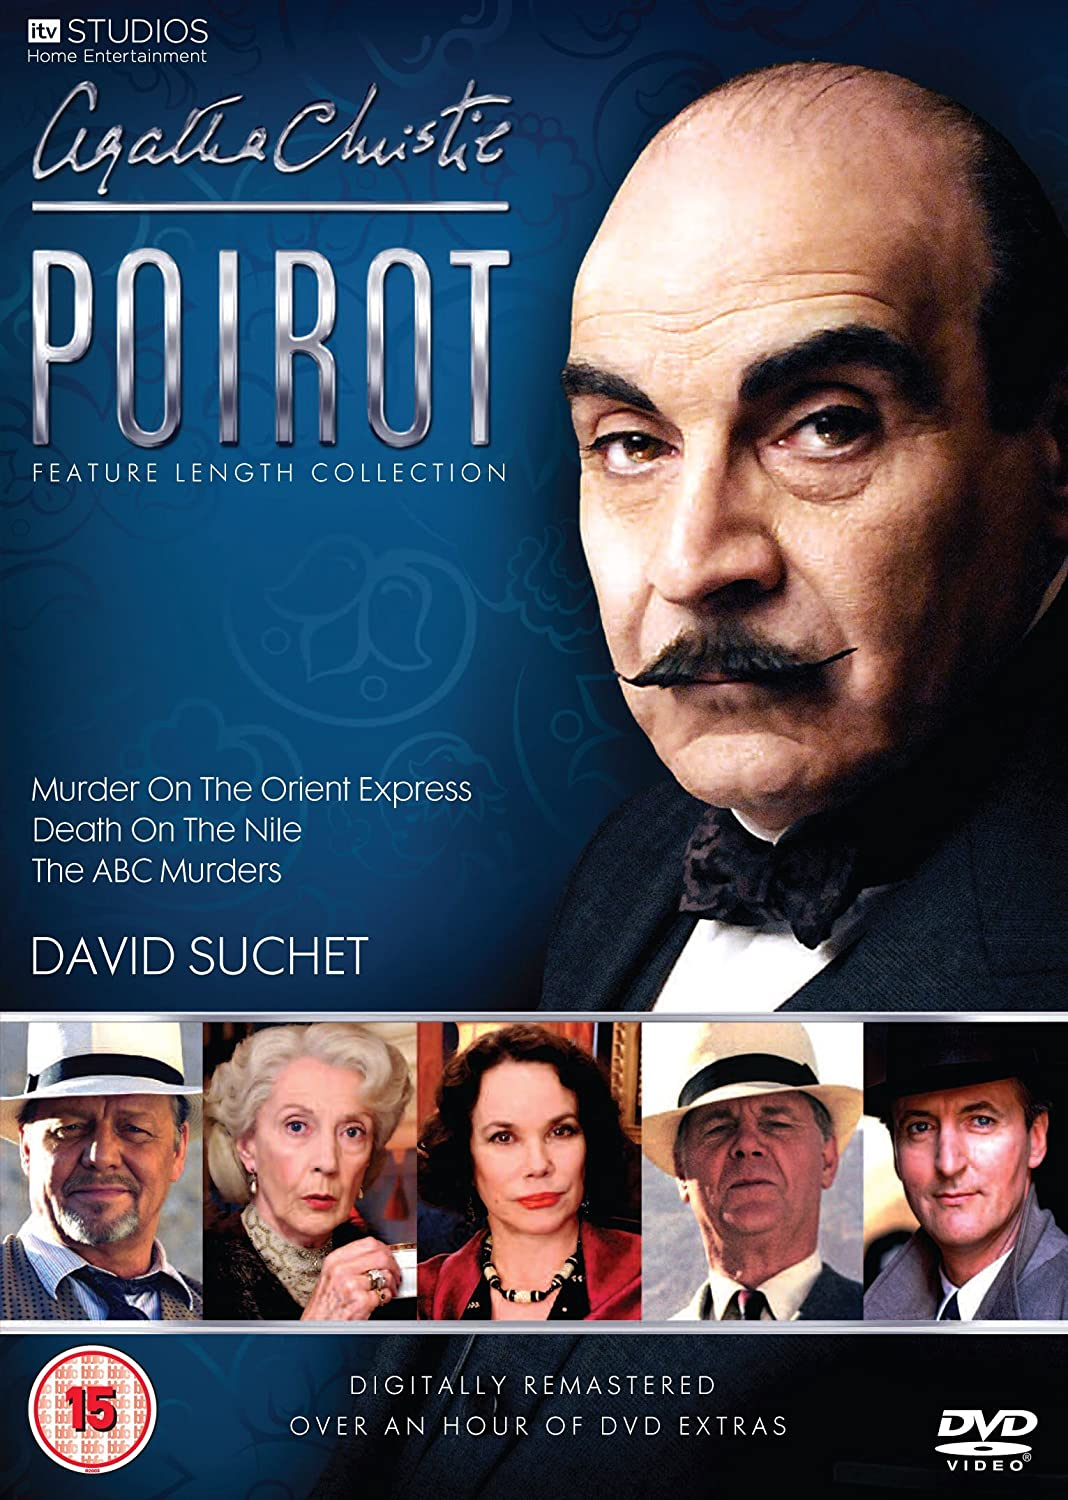 Agatha christie s poirot feature length collection digitally re mastered dvd amazon co uk david suchet dvd blu ray